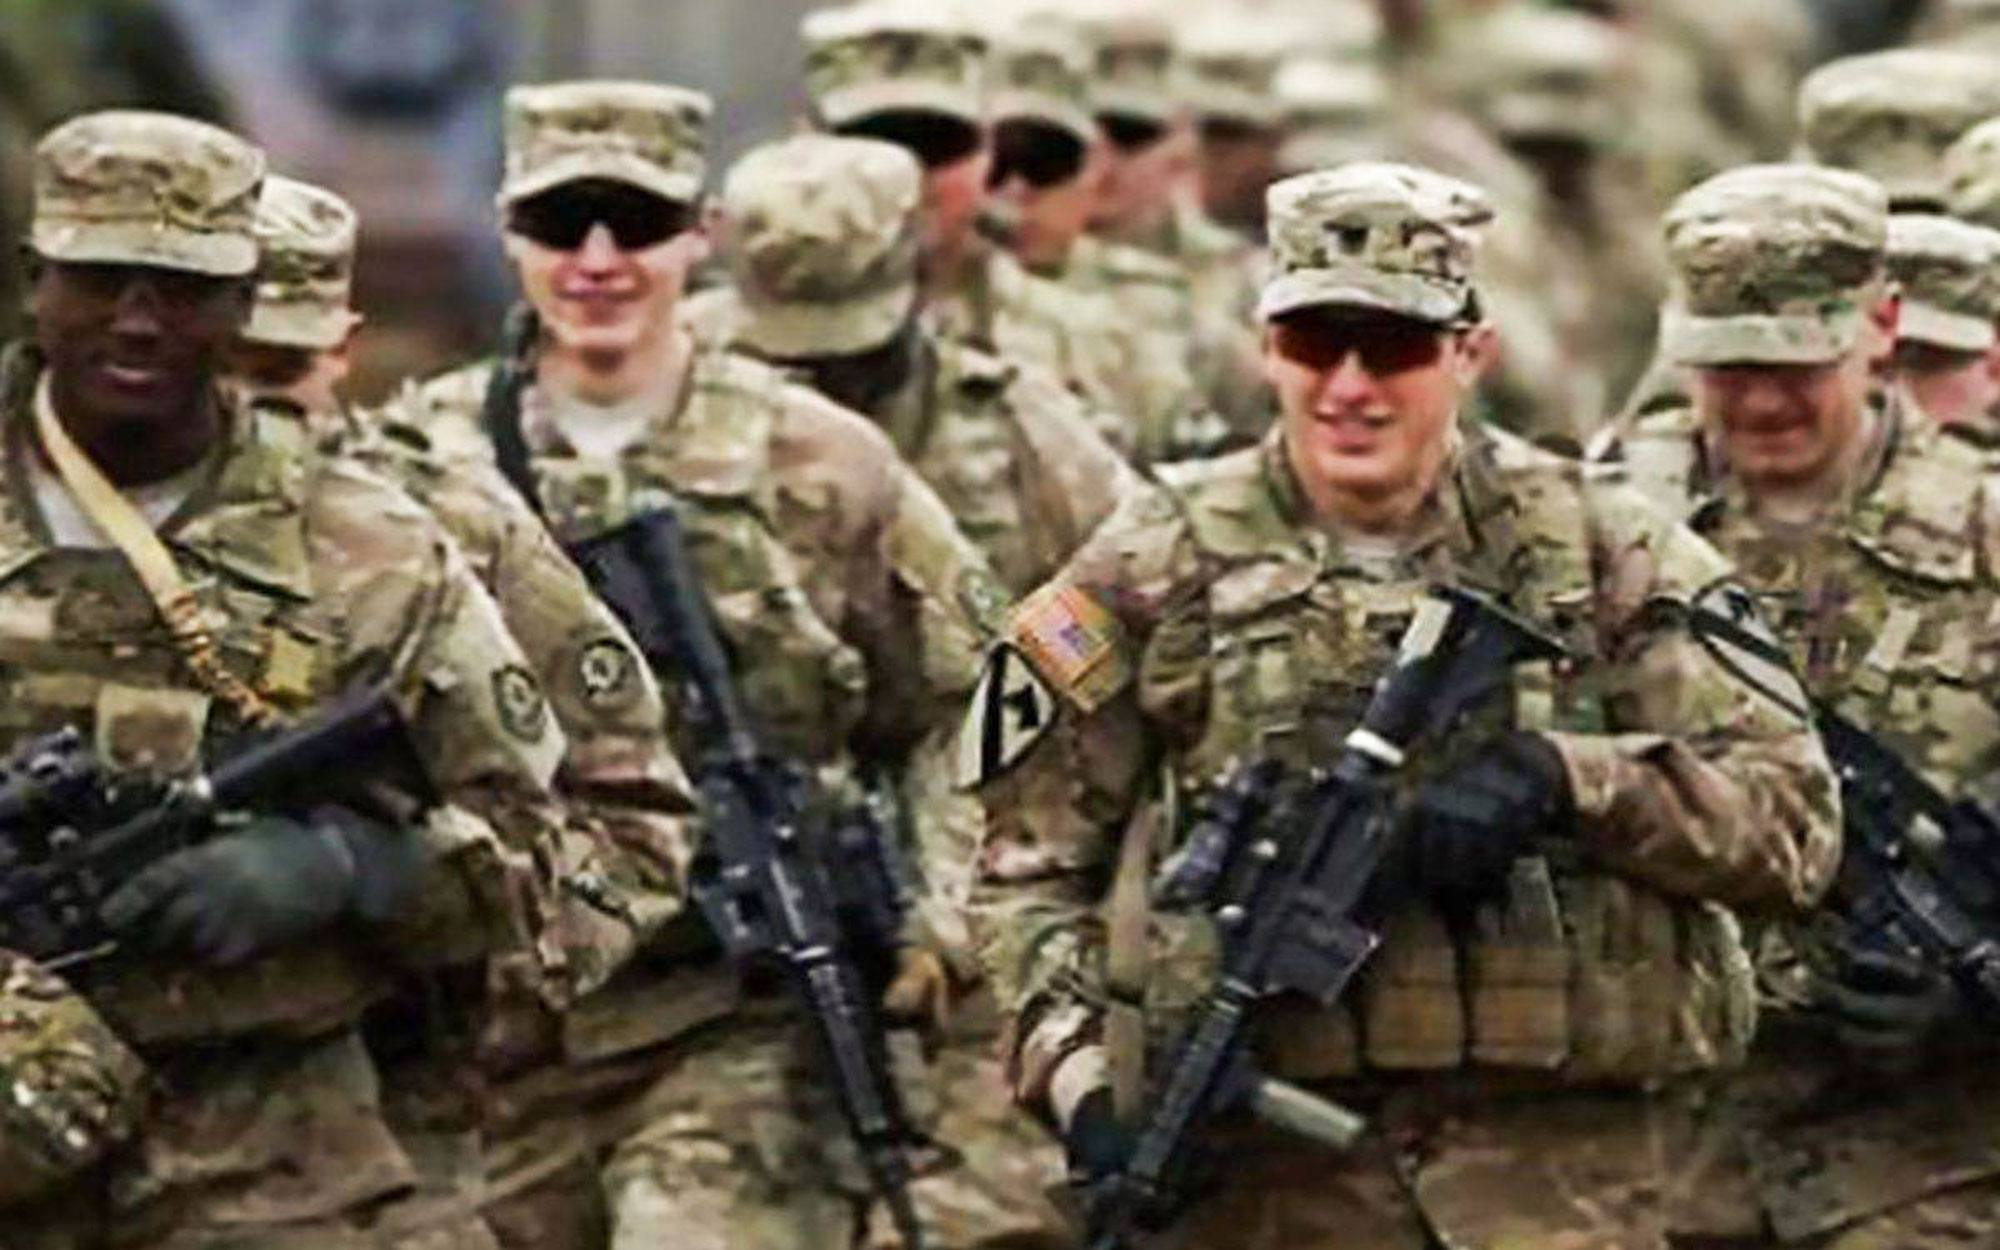 More American Troops Headed to Middle East to Deter Iran in Region